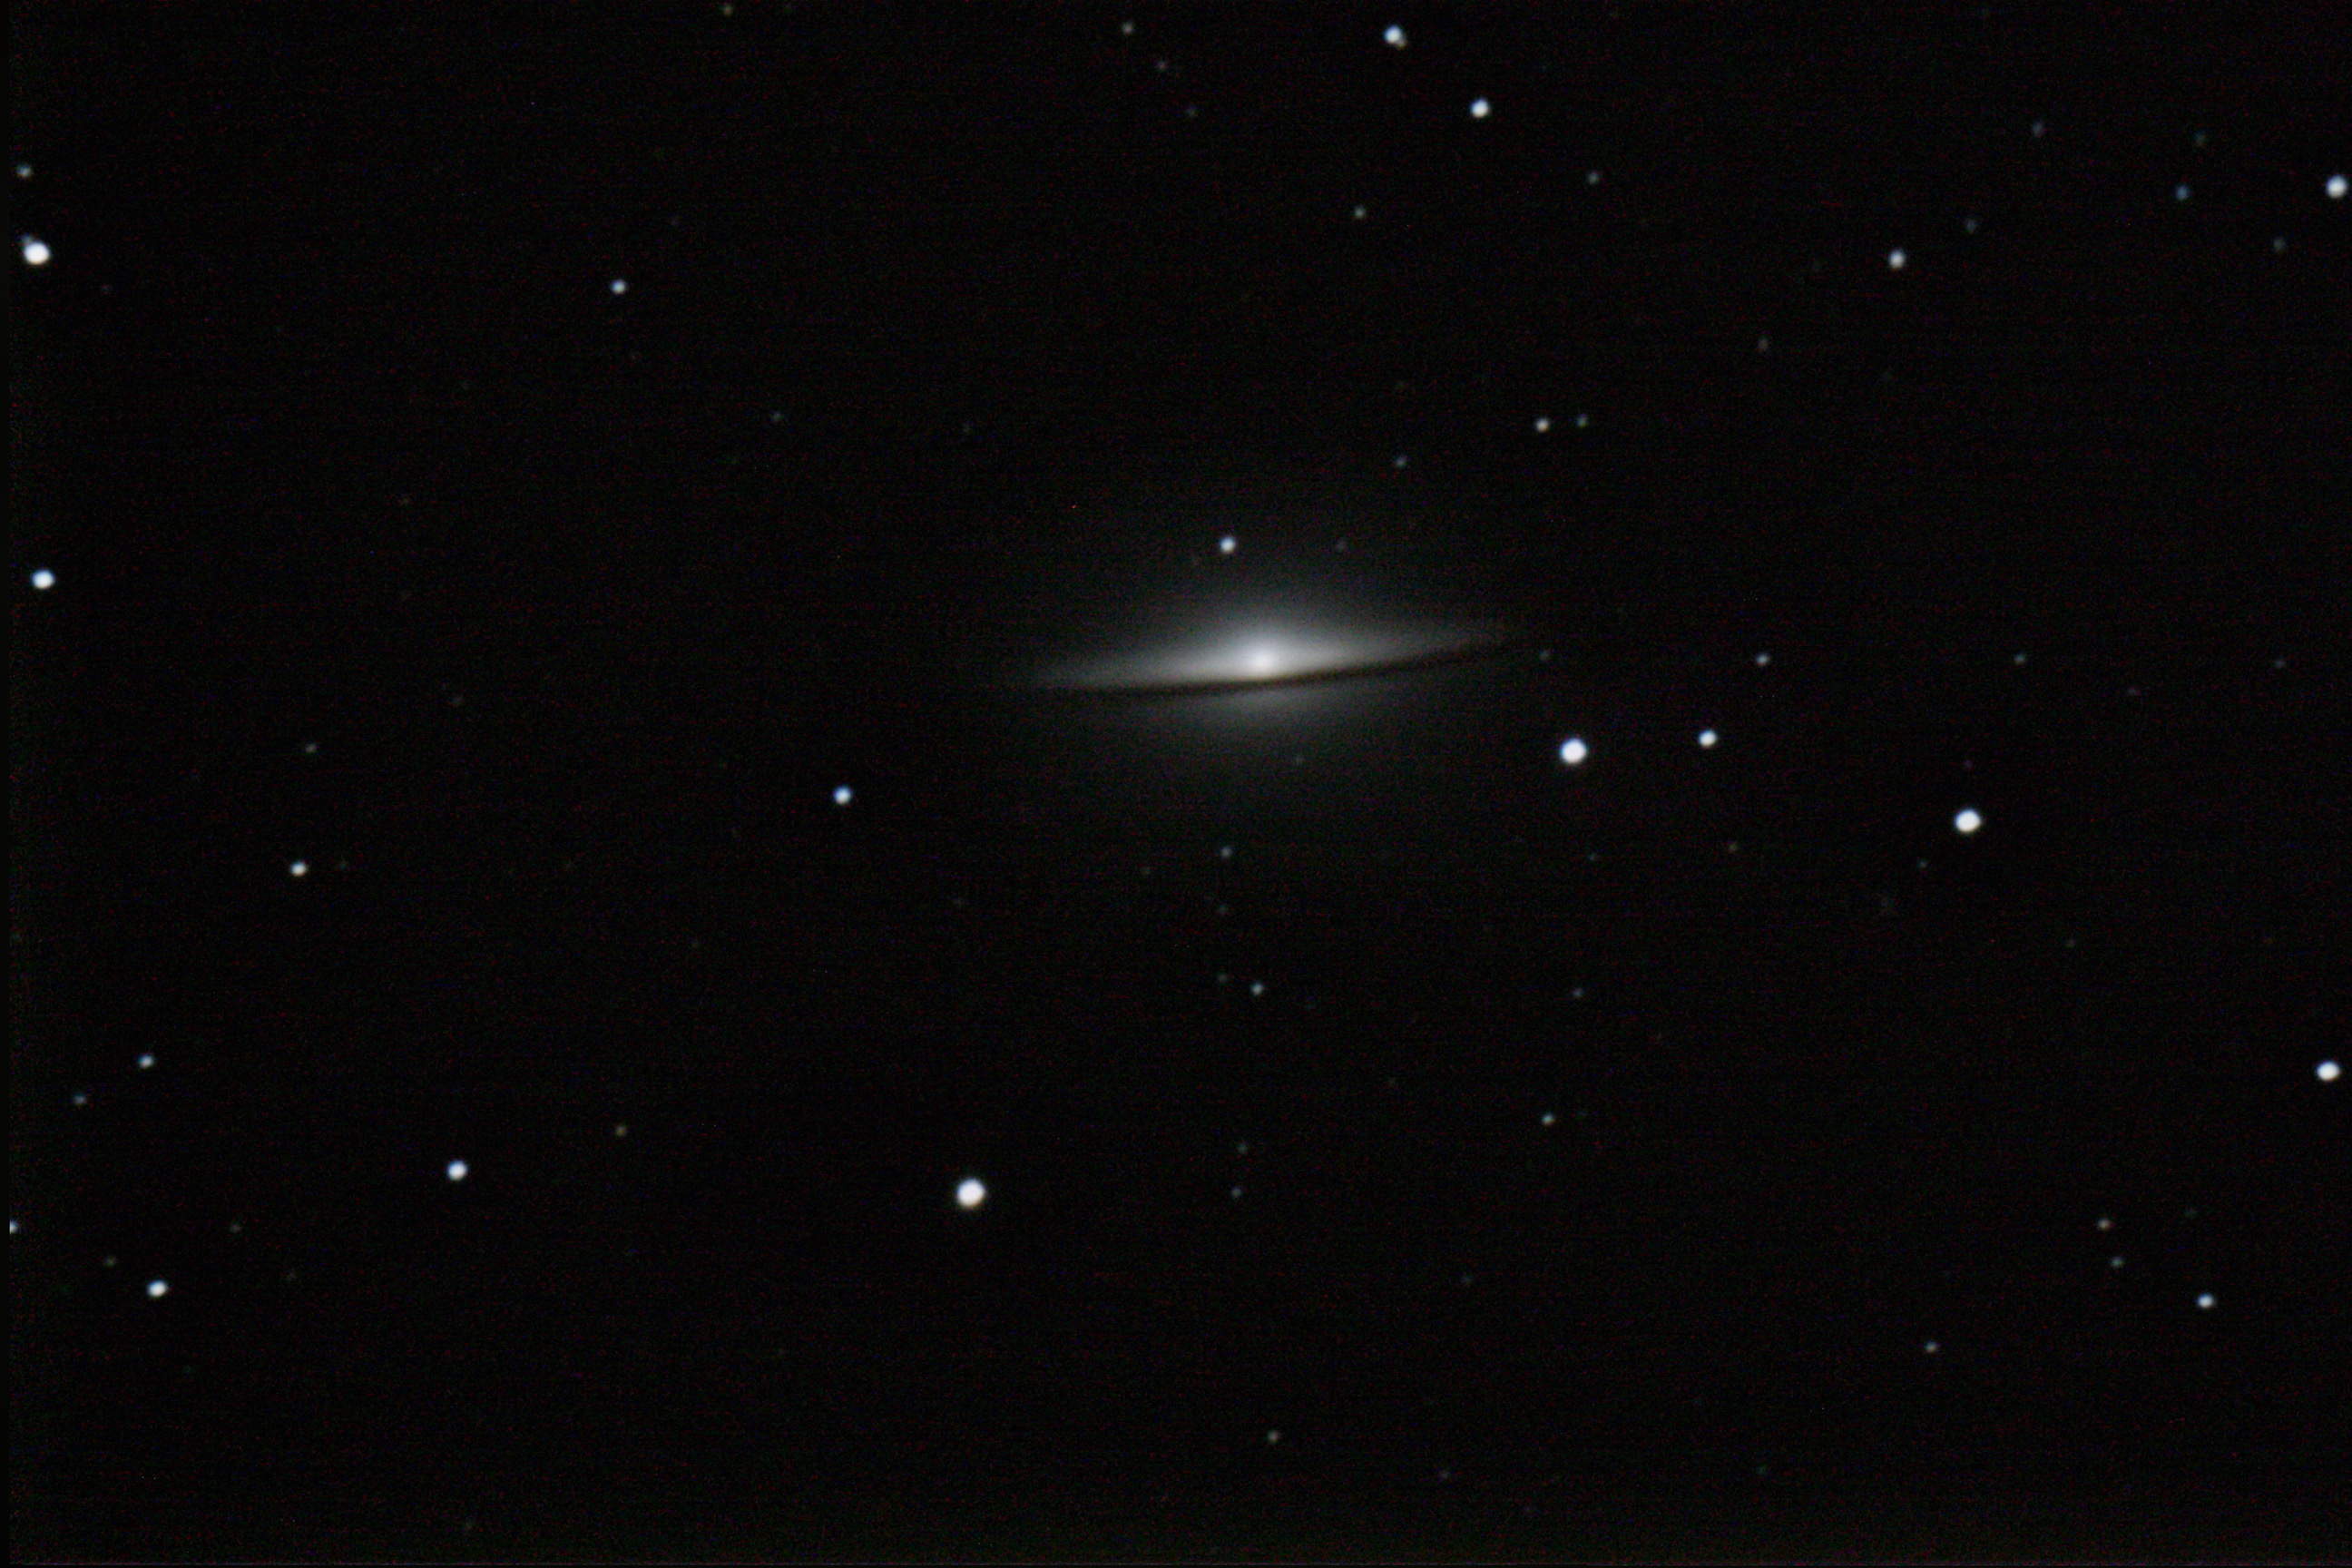 sombrero galaxy screensaver - photo #15